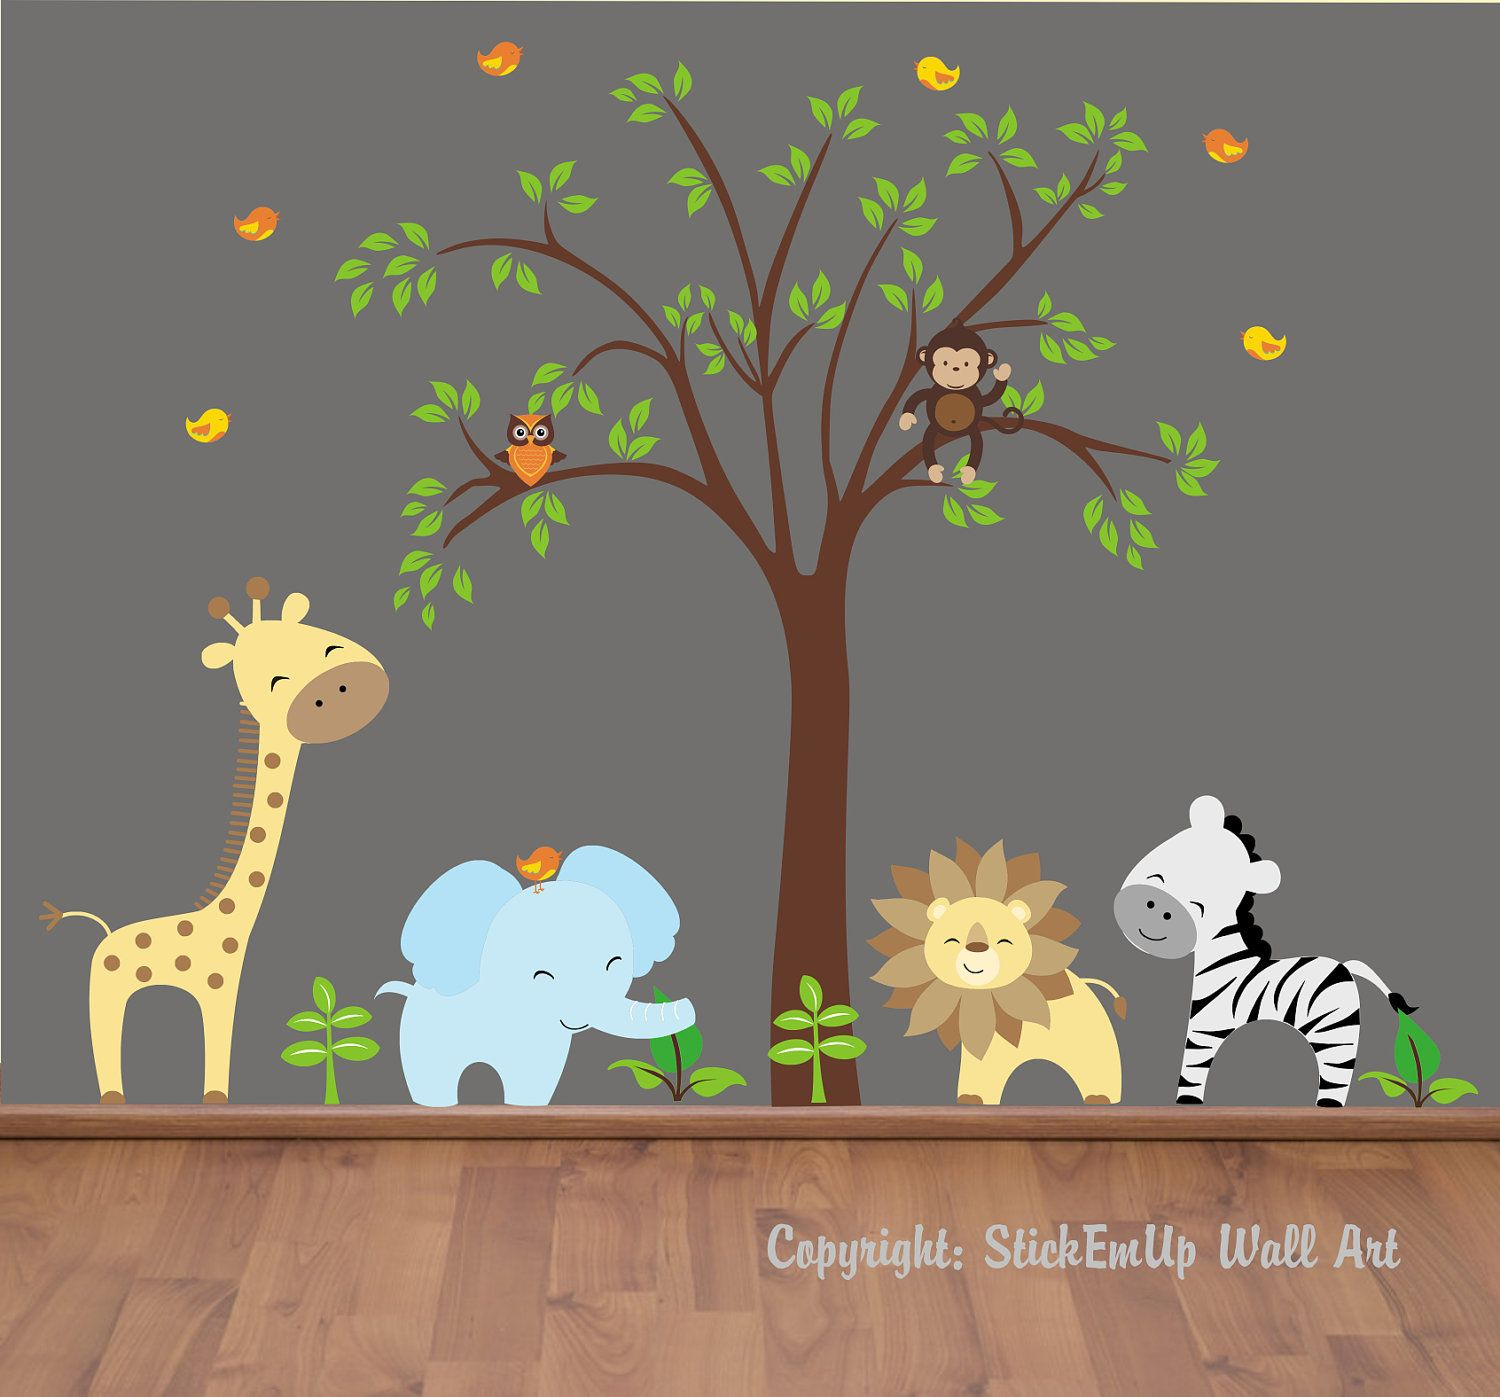 Baby Wall Decals Nursery Wall Decals Jungle Wall Decals - Nursery wall decals jungle